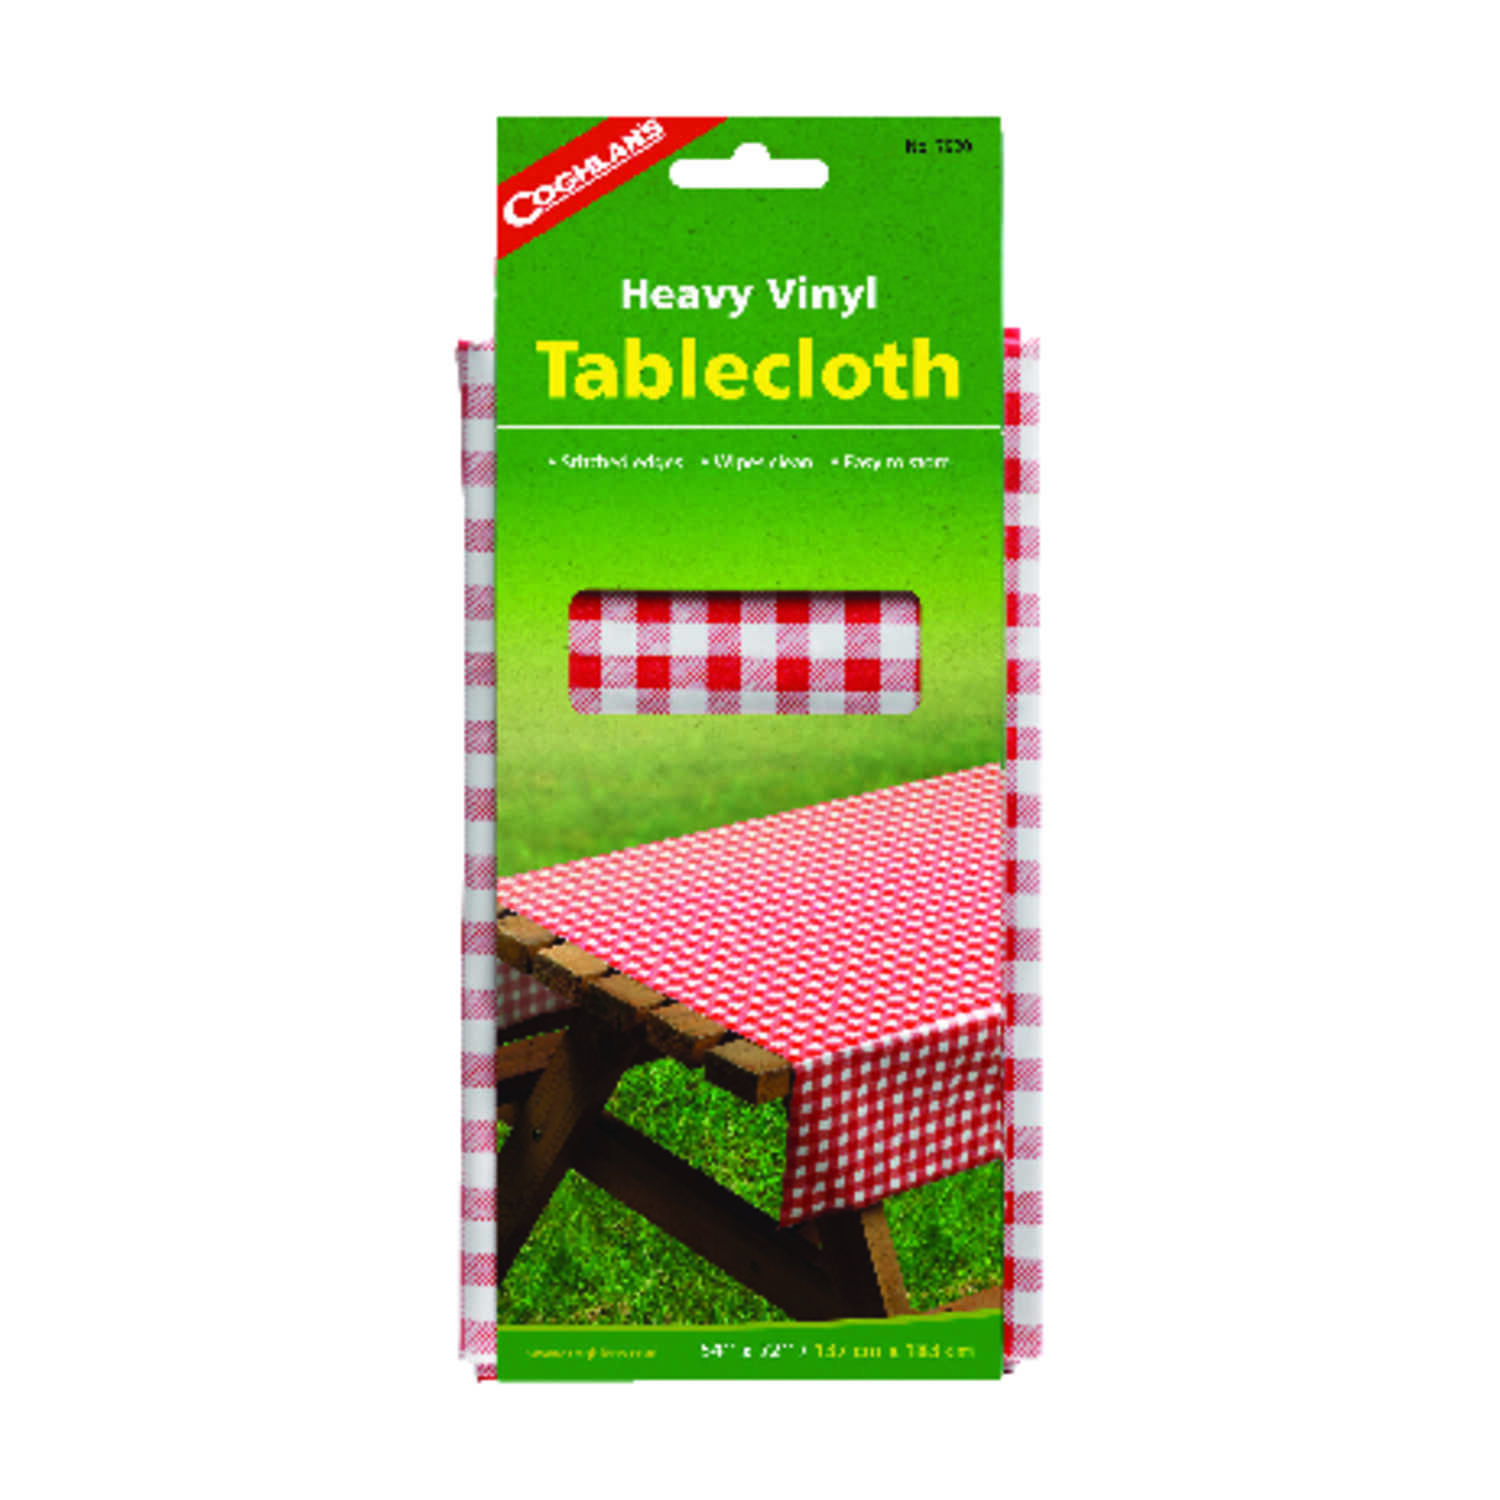 Coghlan's  Red  Tablecloth  10.000 in. H x 72 in. W x 54 in. L 1 pk